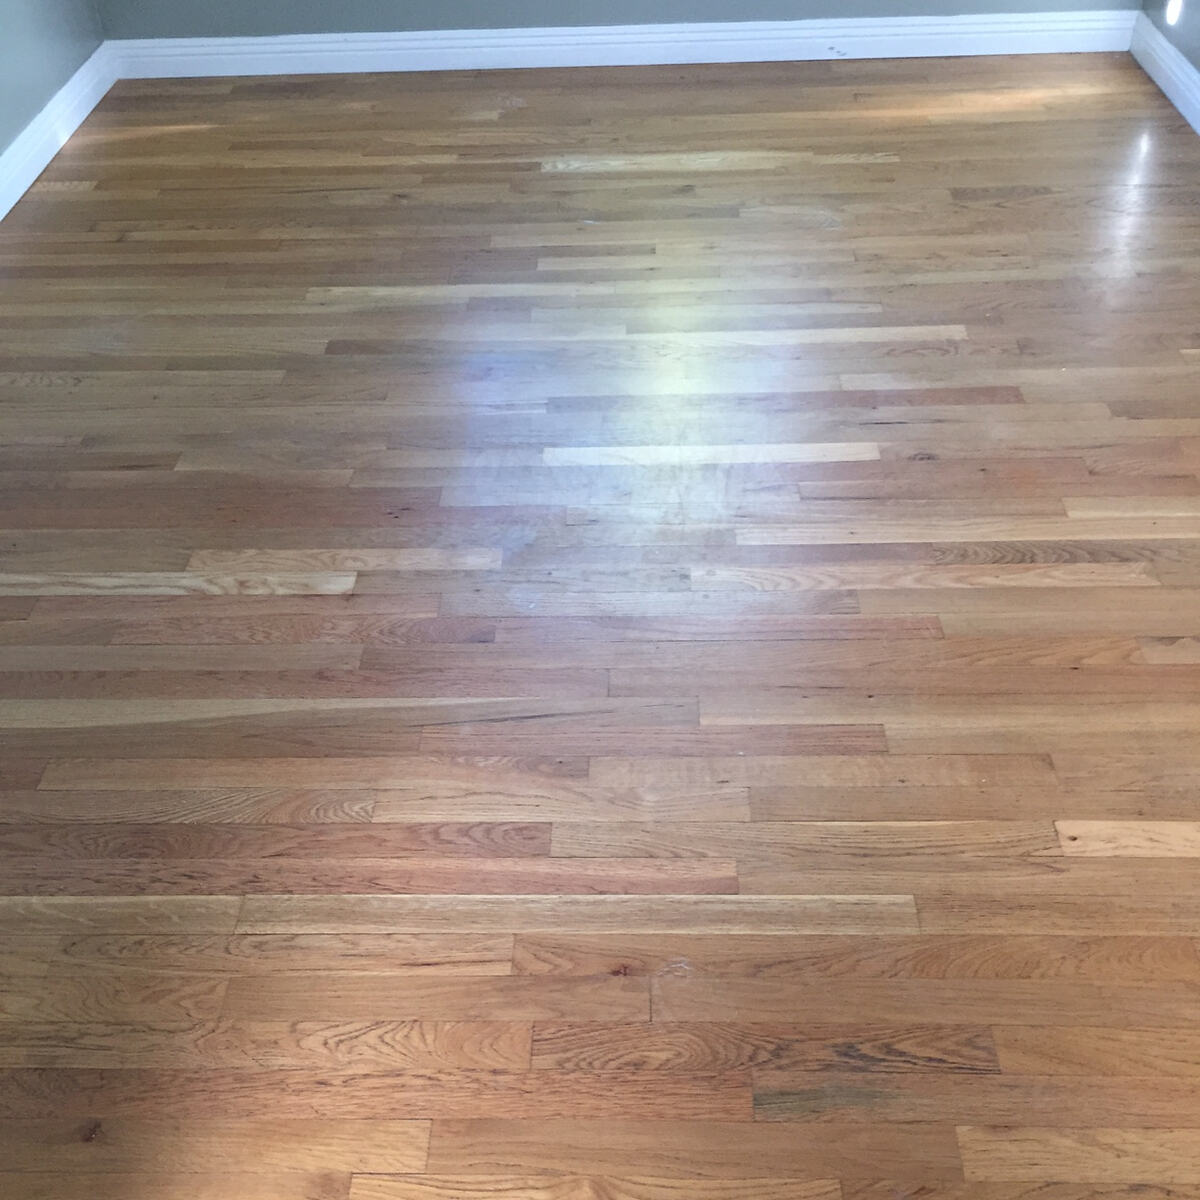 Wood Floor - Before Cleaning